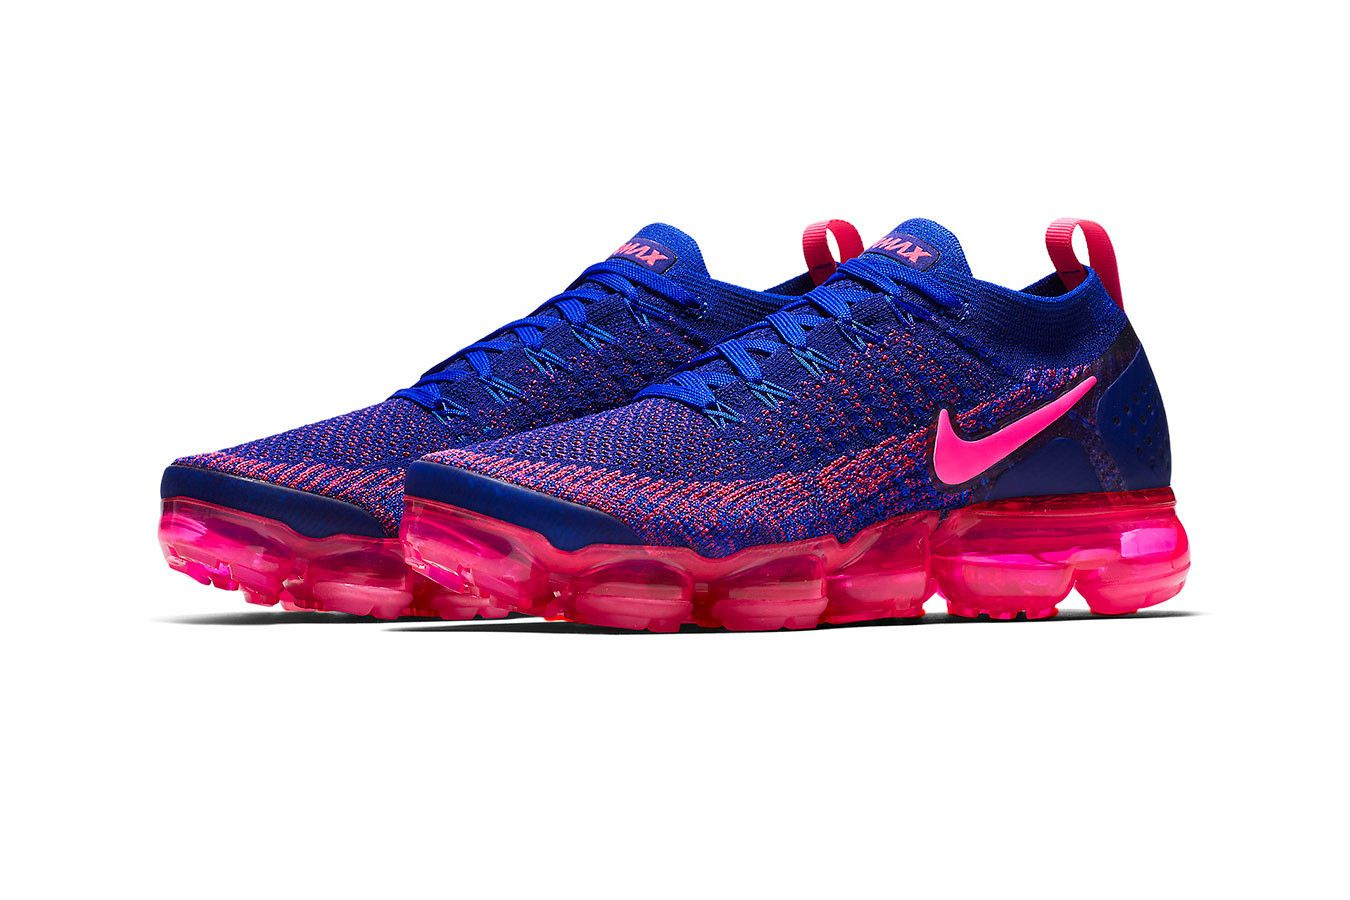 Nike Air VaporMax Flyknit 2.0 Racer Blue Release info Date Racer Pink Blue  sneaker colorway price 87f57e96f